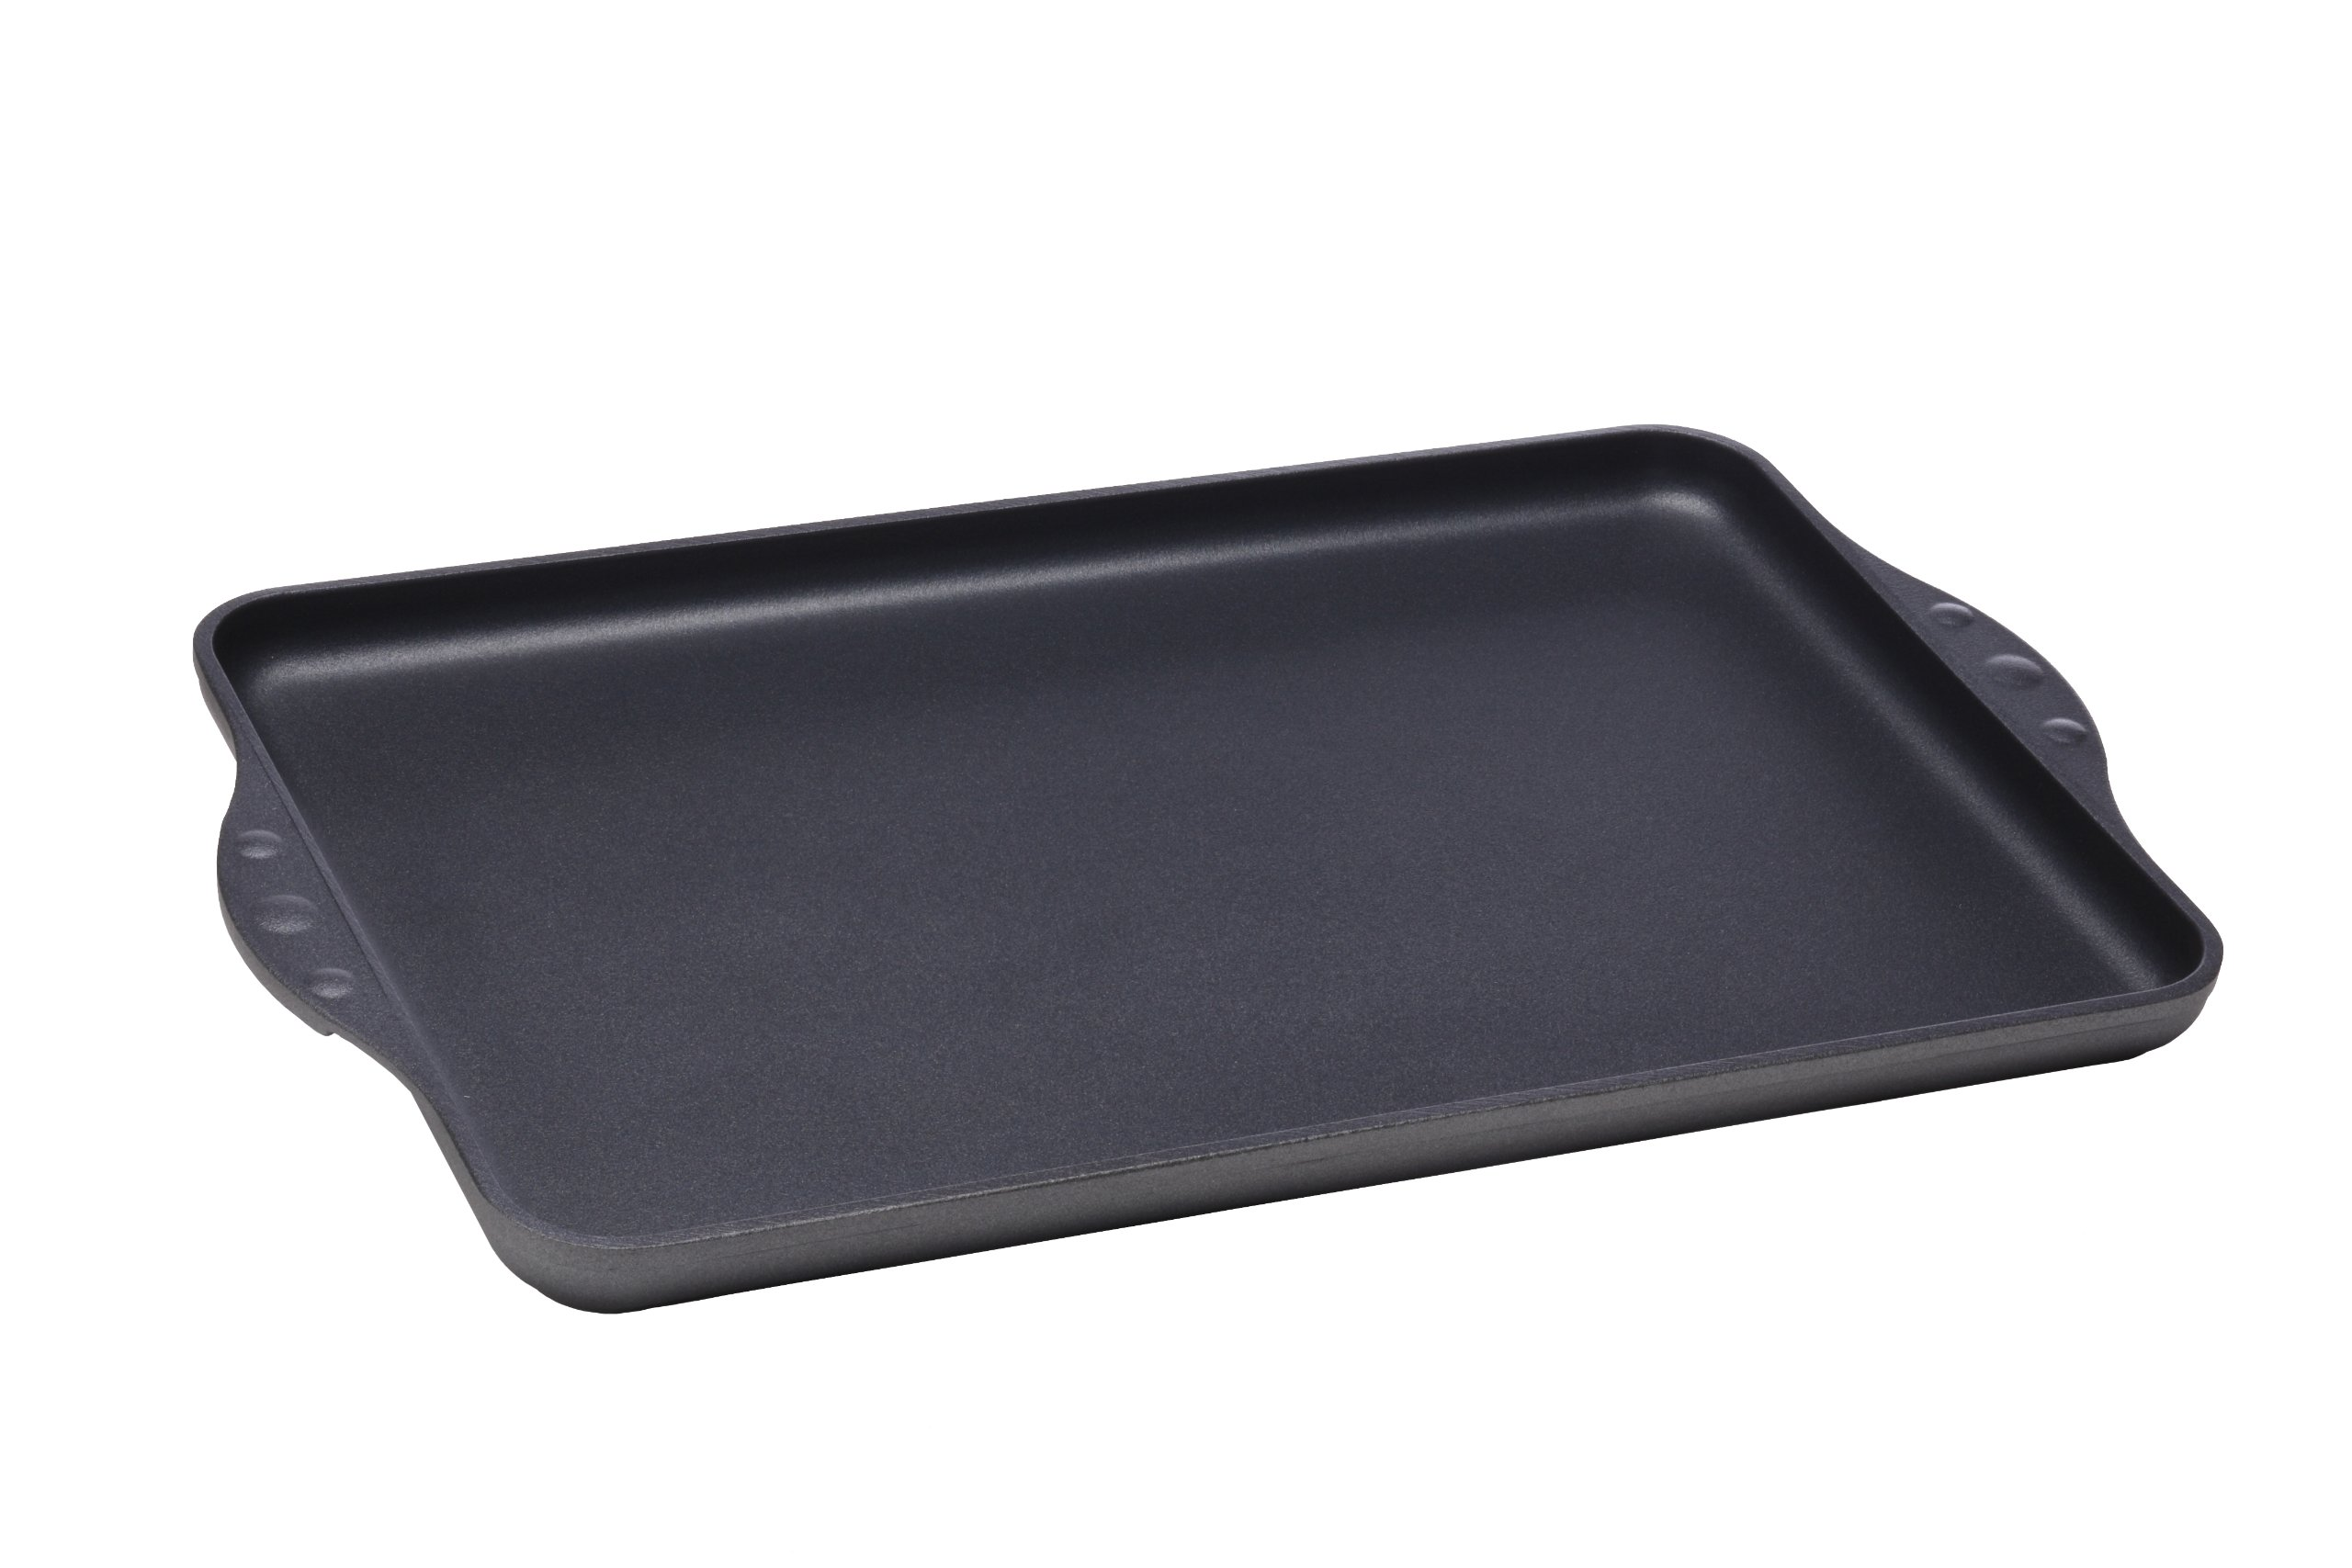 Swiss Diamond Nonstick Double-Burner Griddle by Swiss Diamond (Image #1)